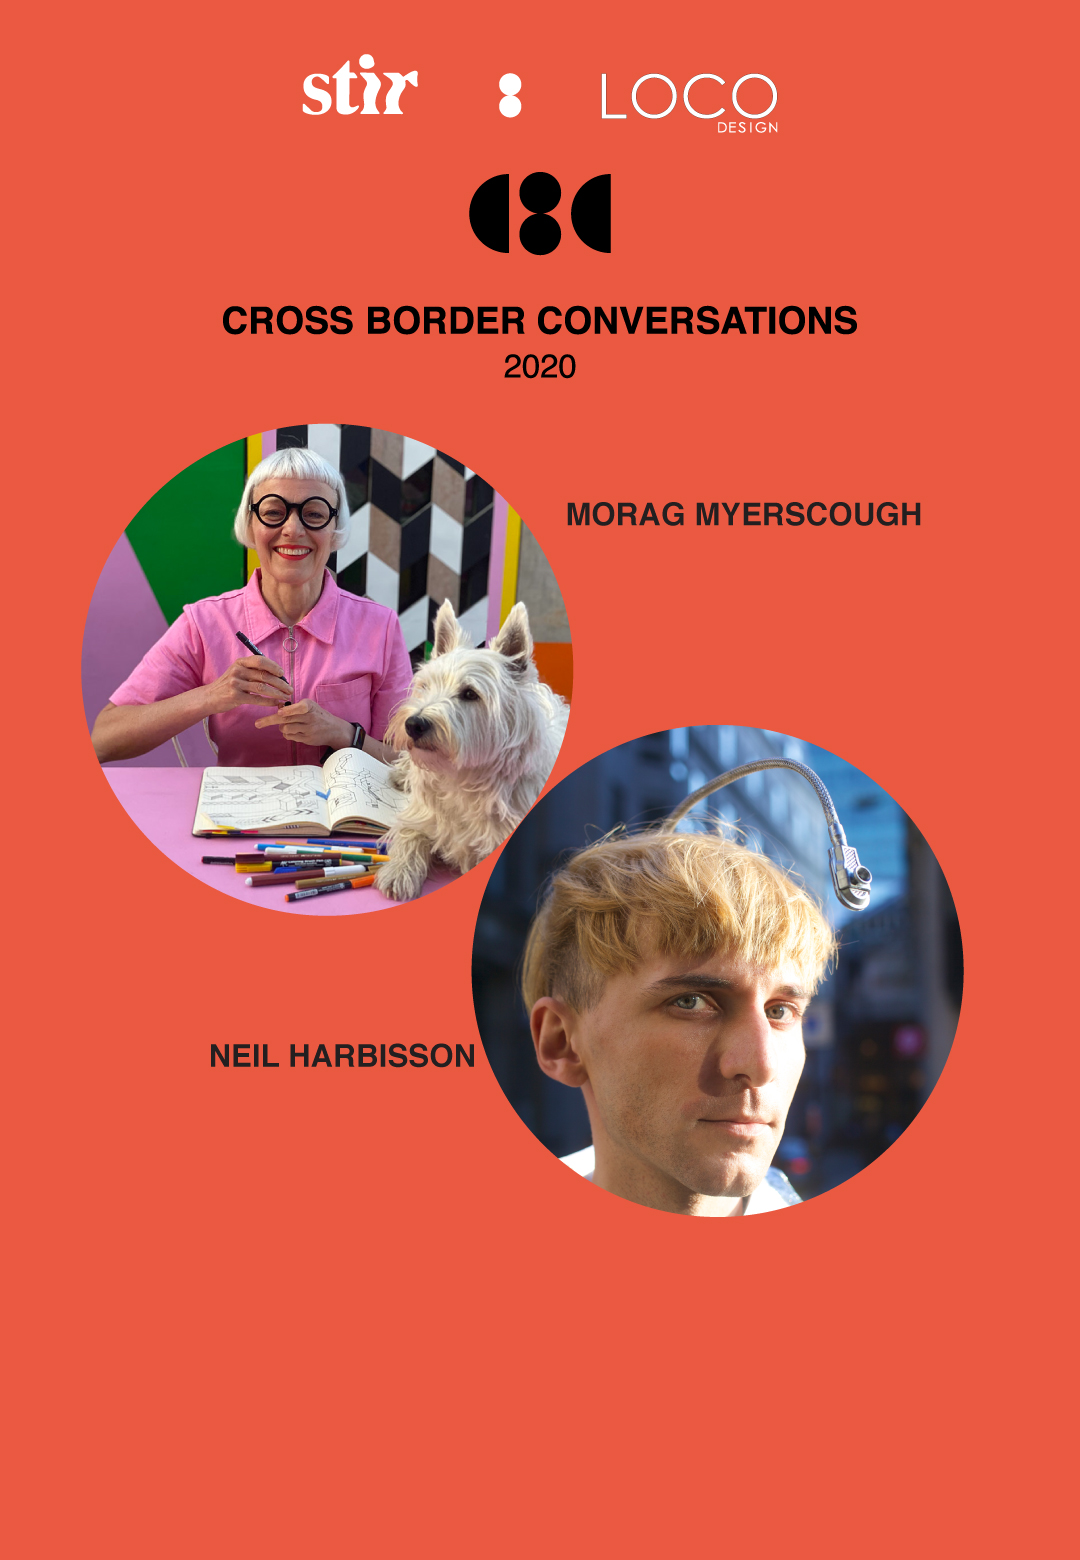 Cross Border Conversations | Morag Myerscough X Neil Harbisson | STIR X LOCO Design